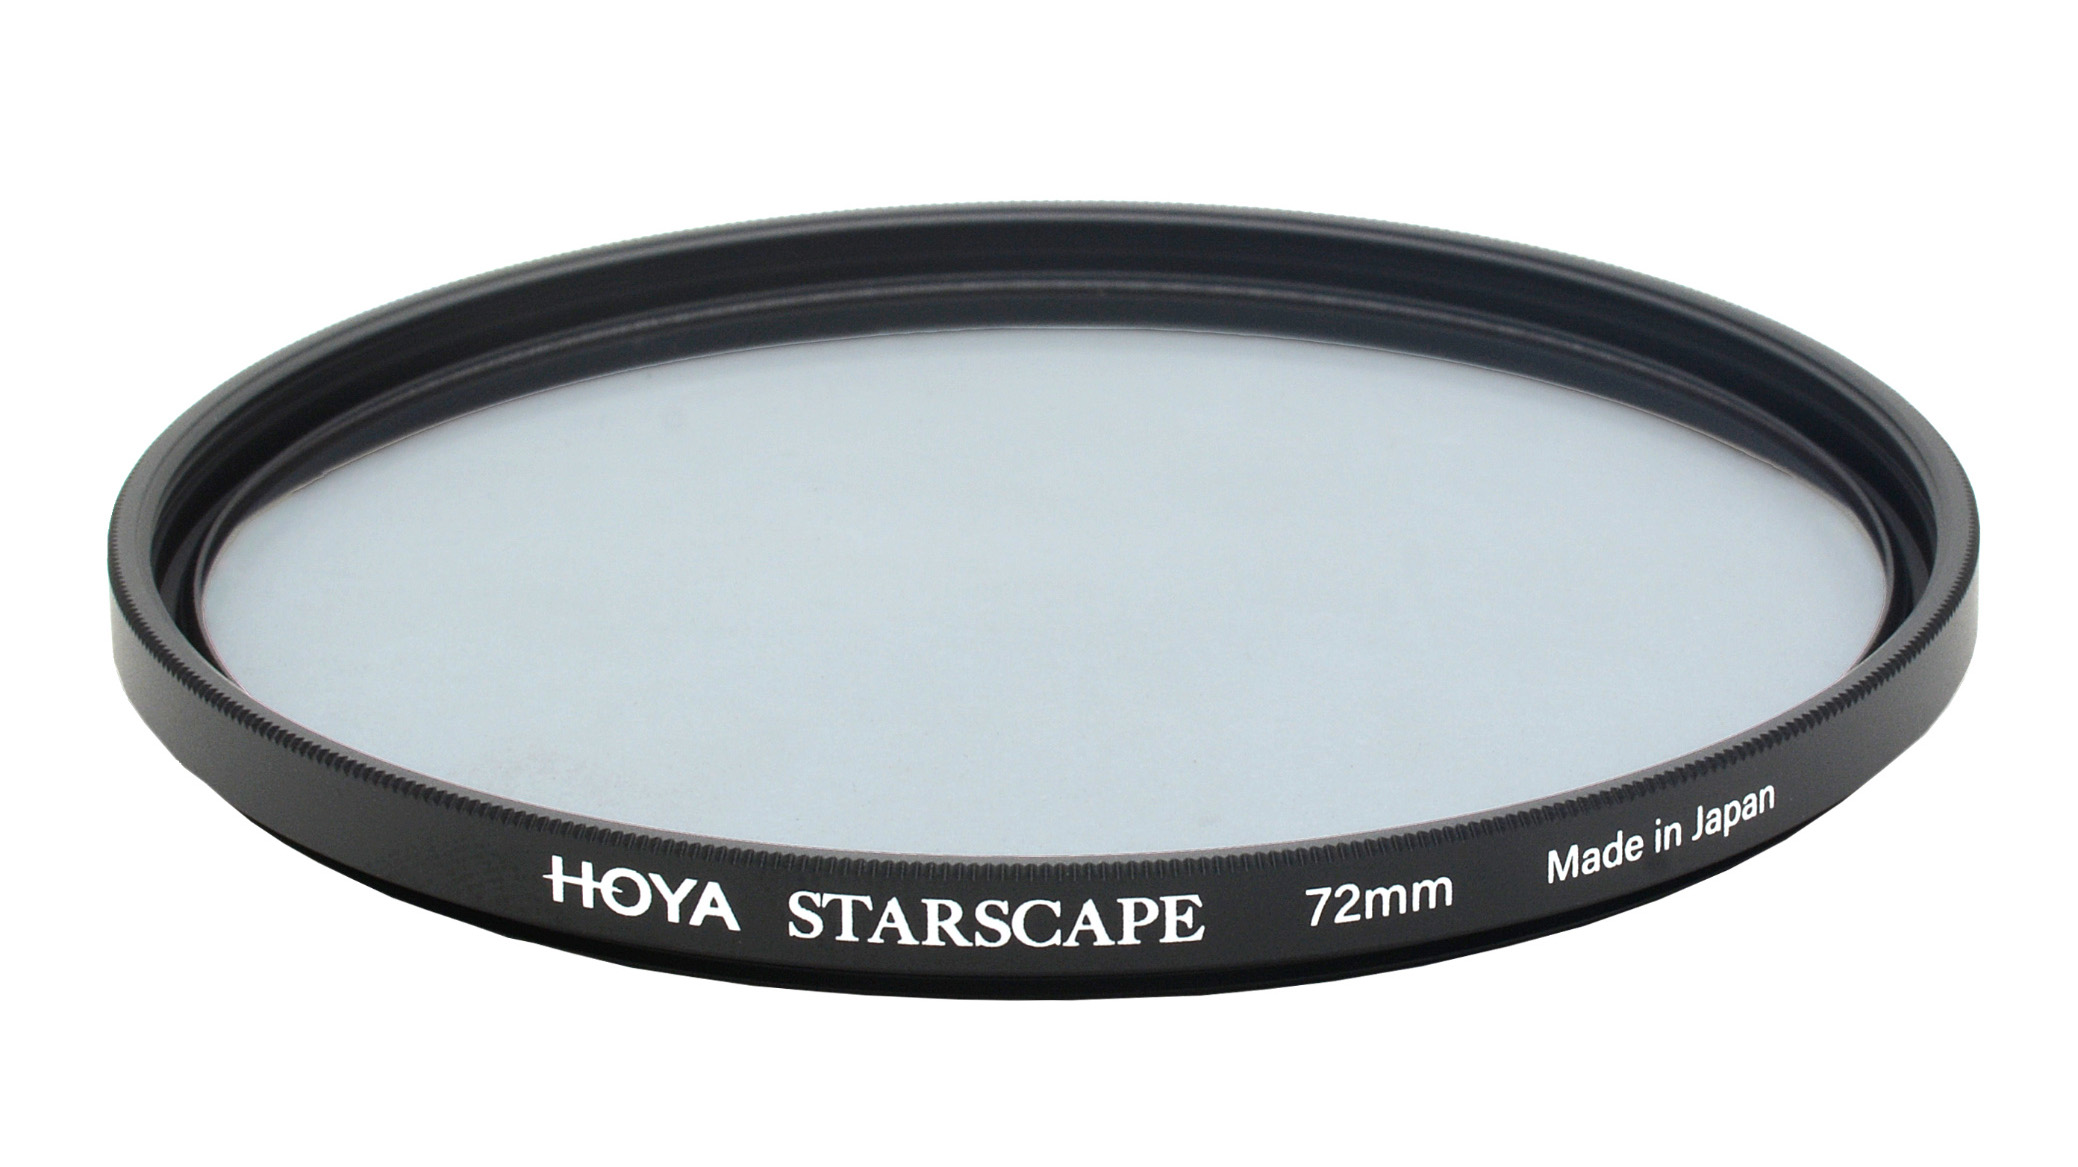 Hoya's new Starscape filters are just the ticket for clearer astrophotography | Digital Camera World